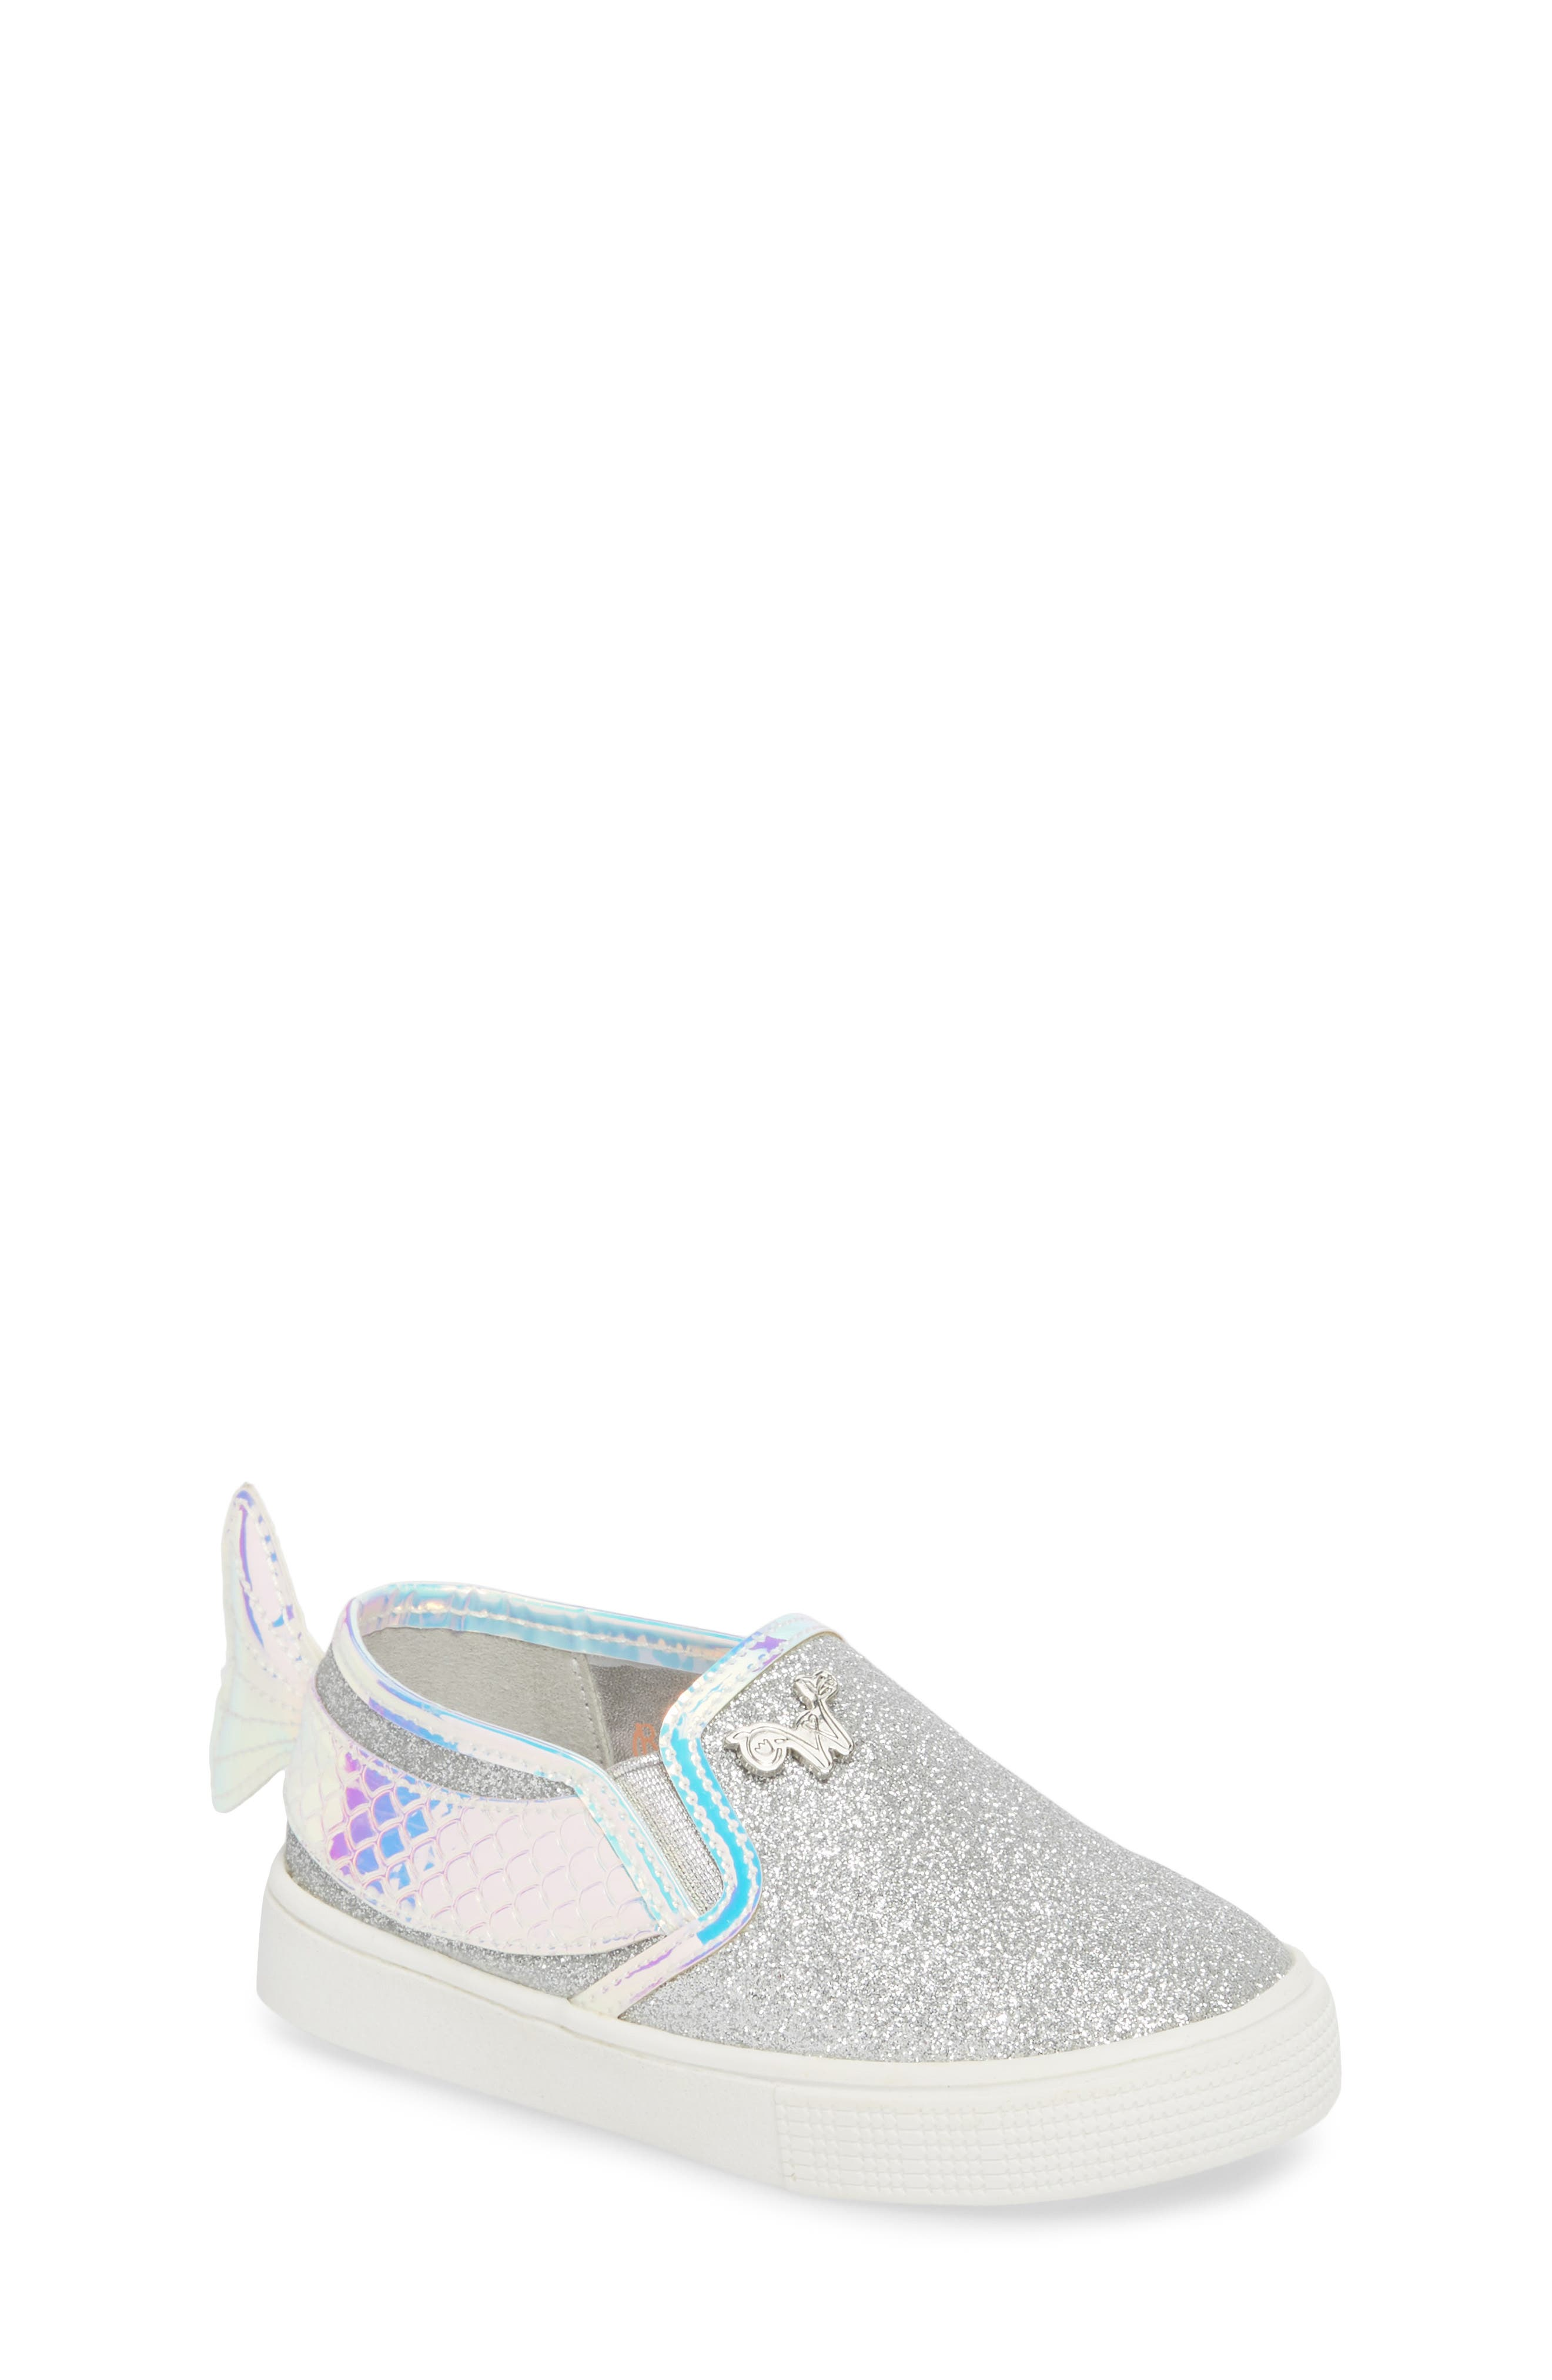 Camille Mermaid Glitter Sneaker,                             Main thumbnail 1, color,                             040